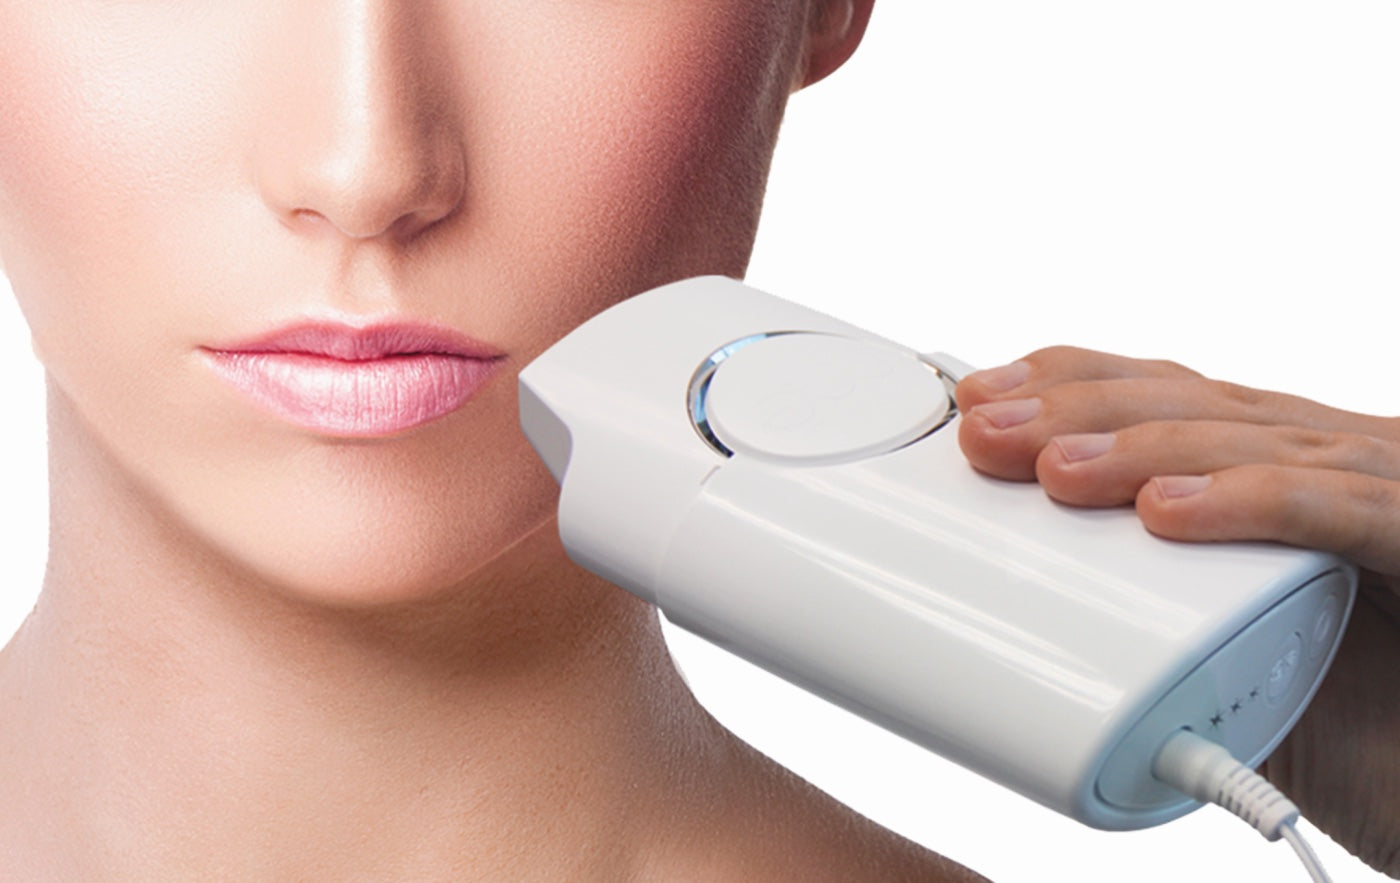 mē Chic Professional Face & Body Permanent Hair Reduction System (FDA-Cleared)